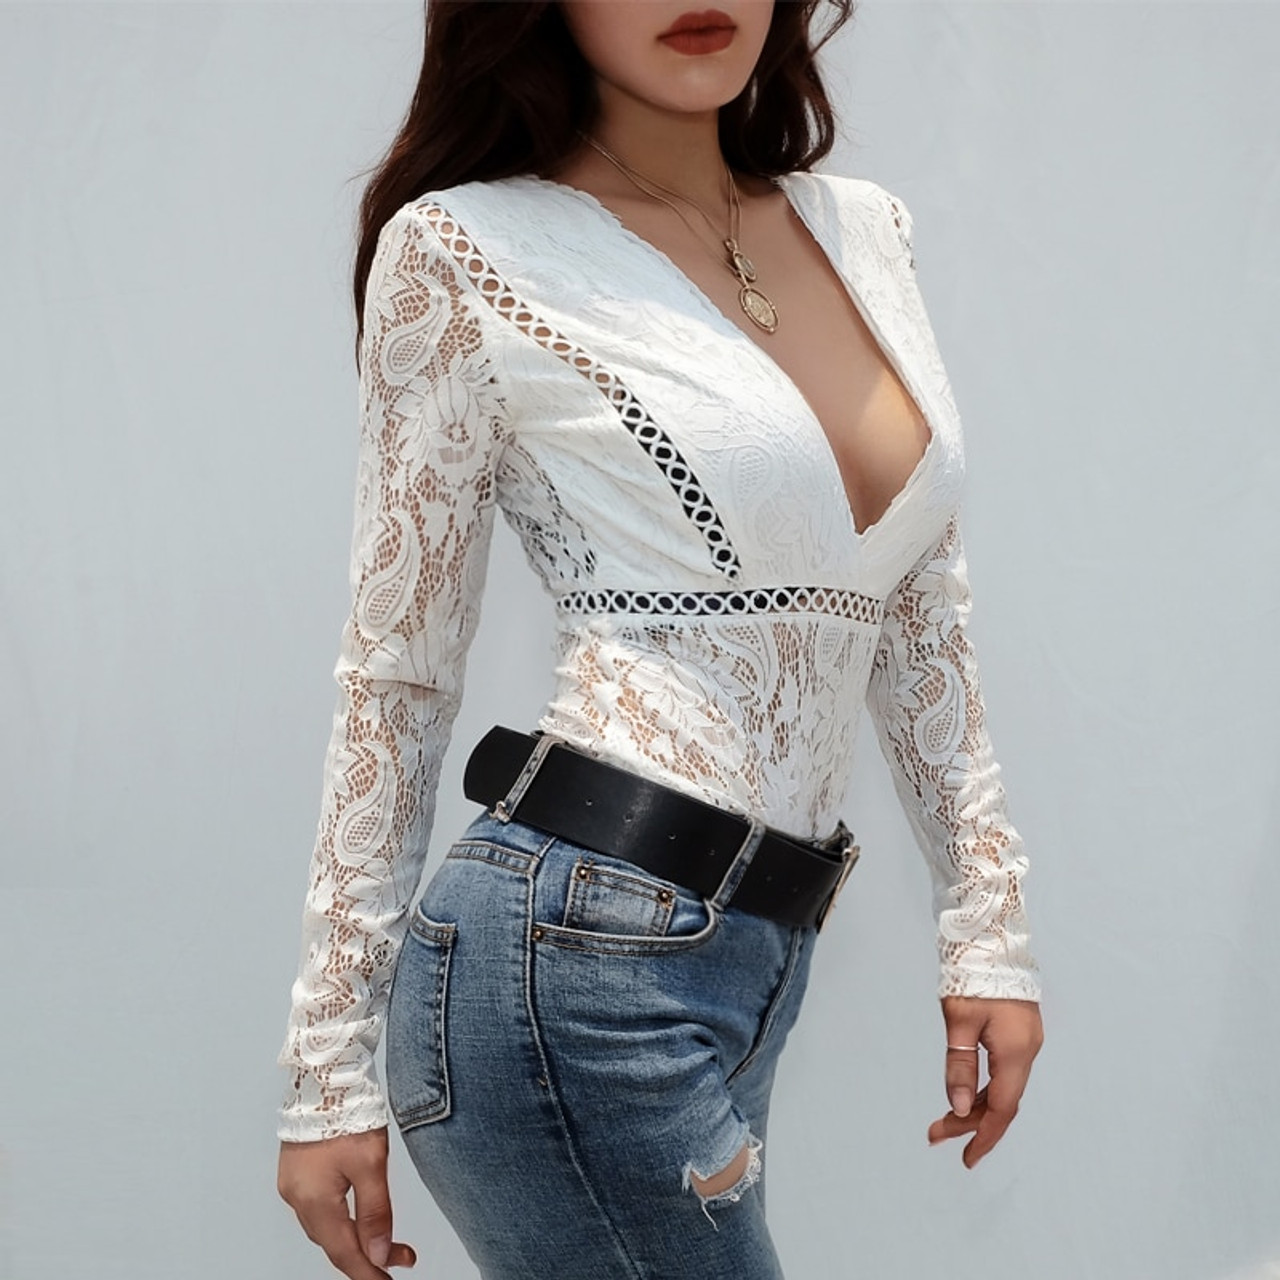 b3d8714b5 ... Sweetown Long Sleeve Lace Bodysuit Elegant Shirt Women White Spring  Summer 2019 Body Mujer Sexy Transparent ...